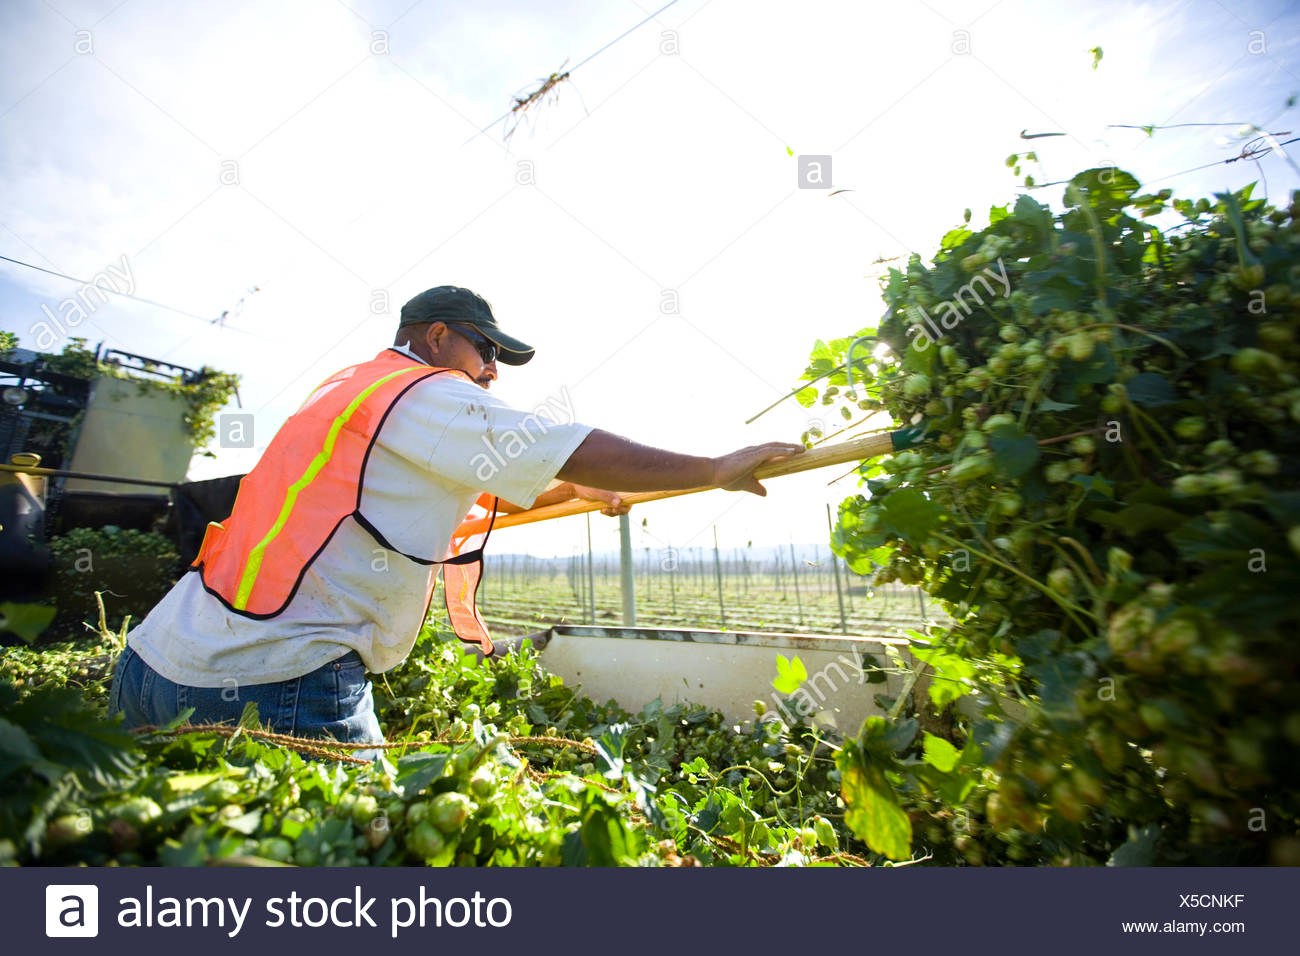 A worker spreads hops in the back of a truck as they are cut. - Stock Image